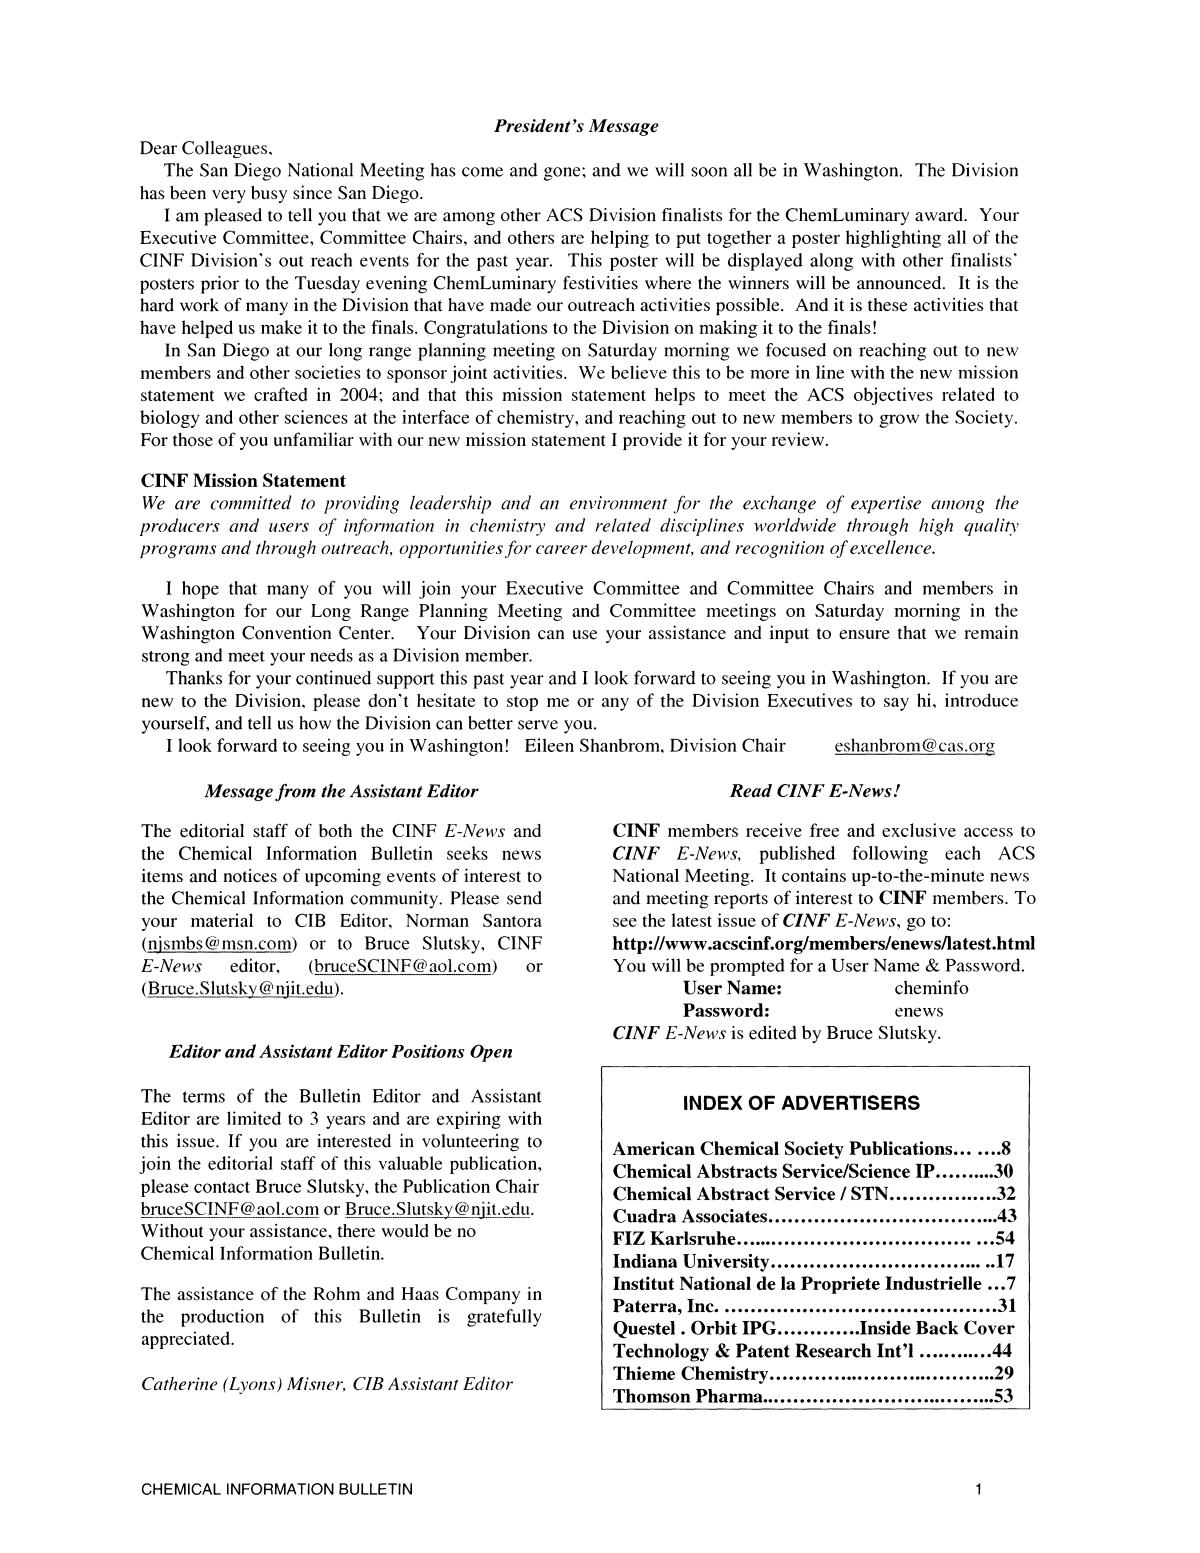 Chemical Information Bulletin, Volume 57 Number 2, Fall 2005                                                                                                      1